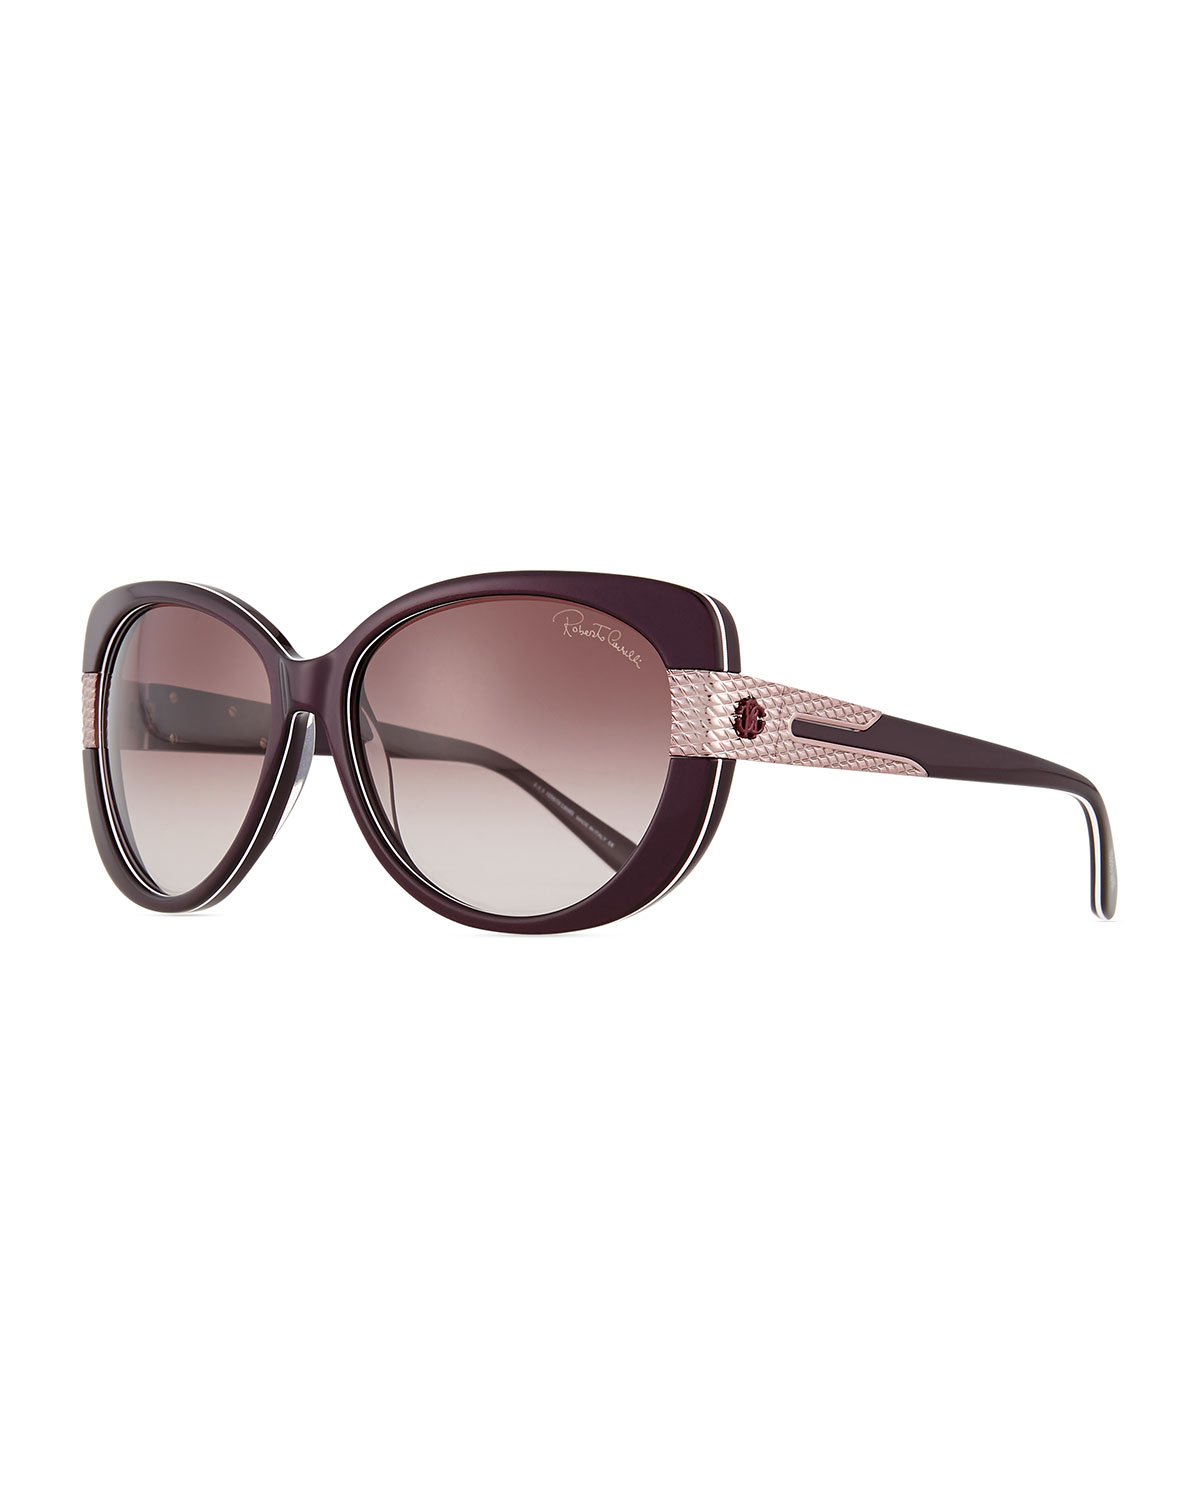 roberto cavalli plastic sunglasses in purple lyst